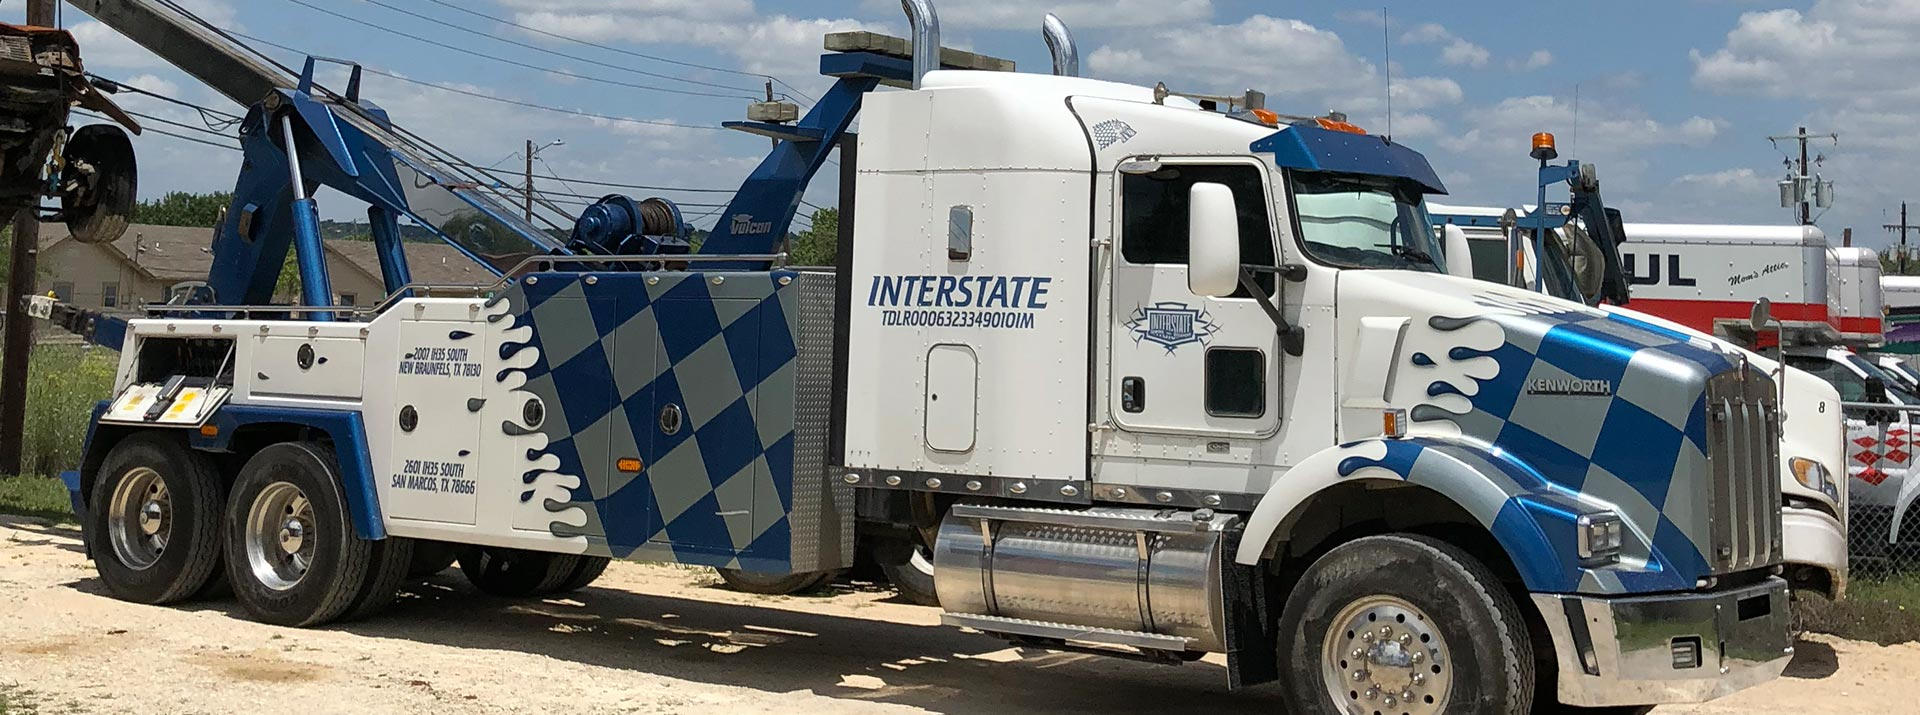 Interstatetowingrecovery Banner